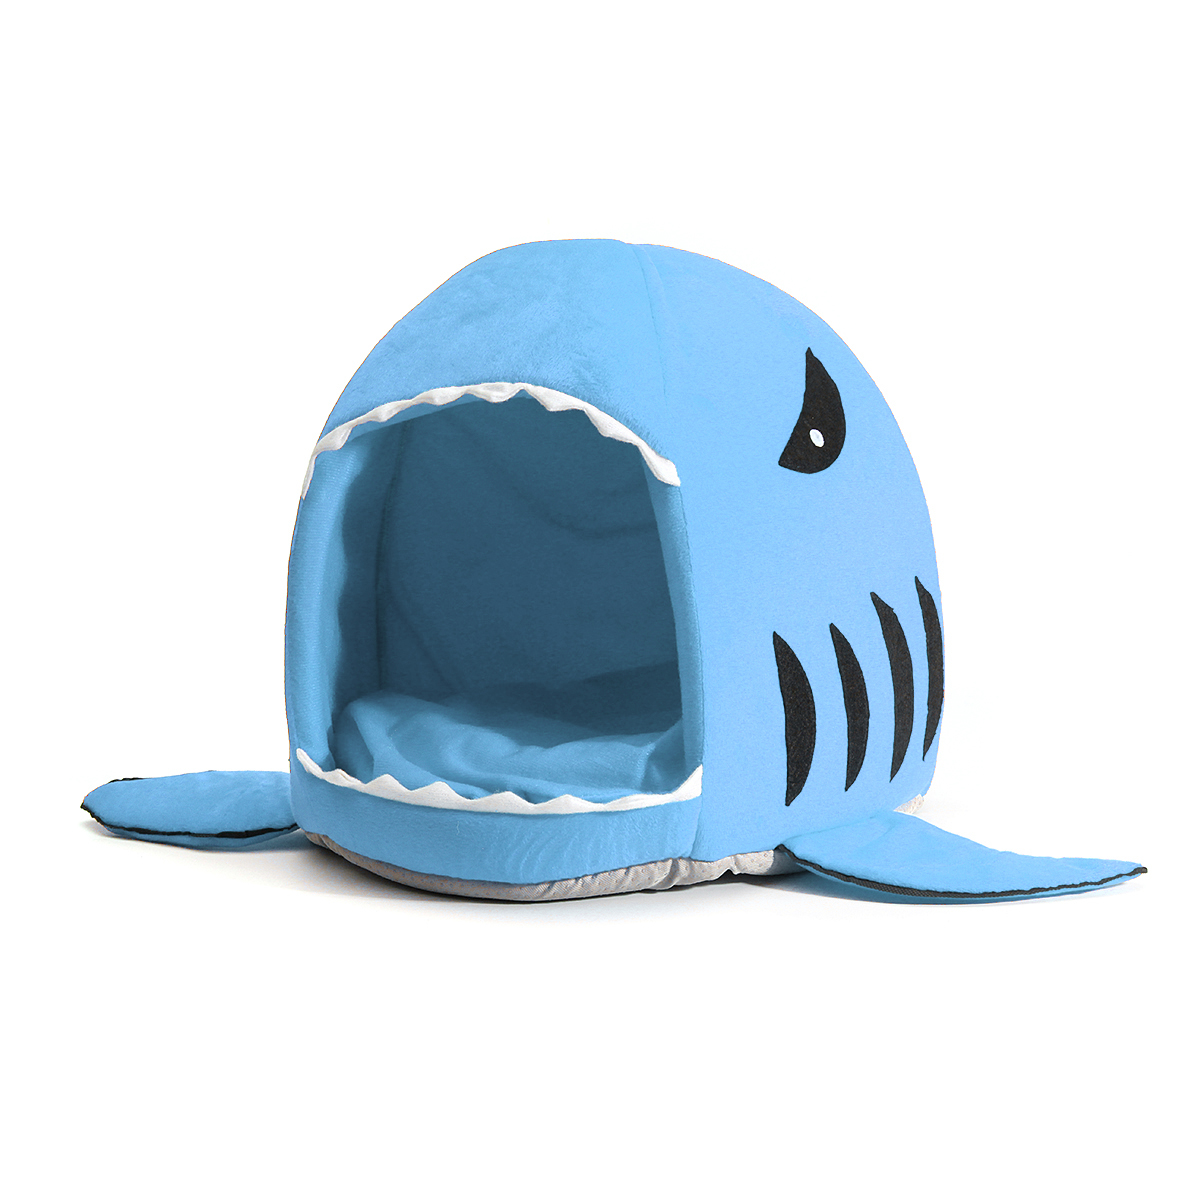 Puppy Pet Cat Dog Shark Mouth House Warm Sleeping Bag Soft Bed Kennel Cushion Pet Bed